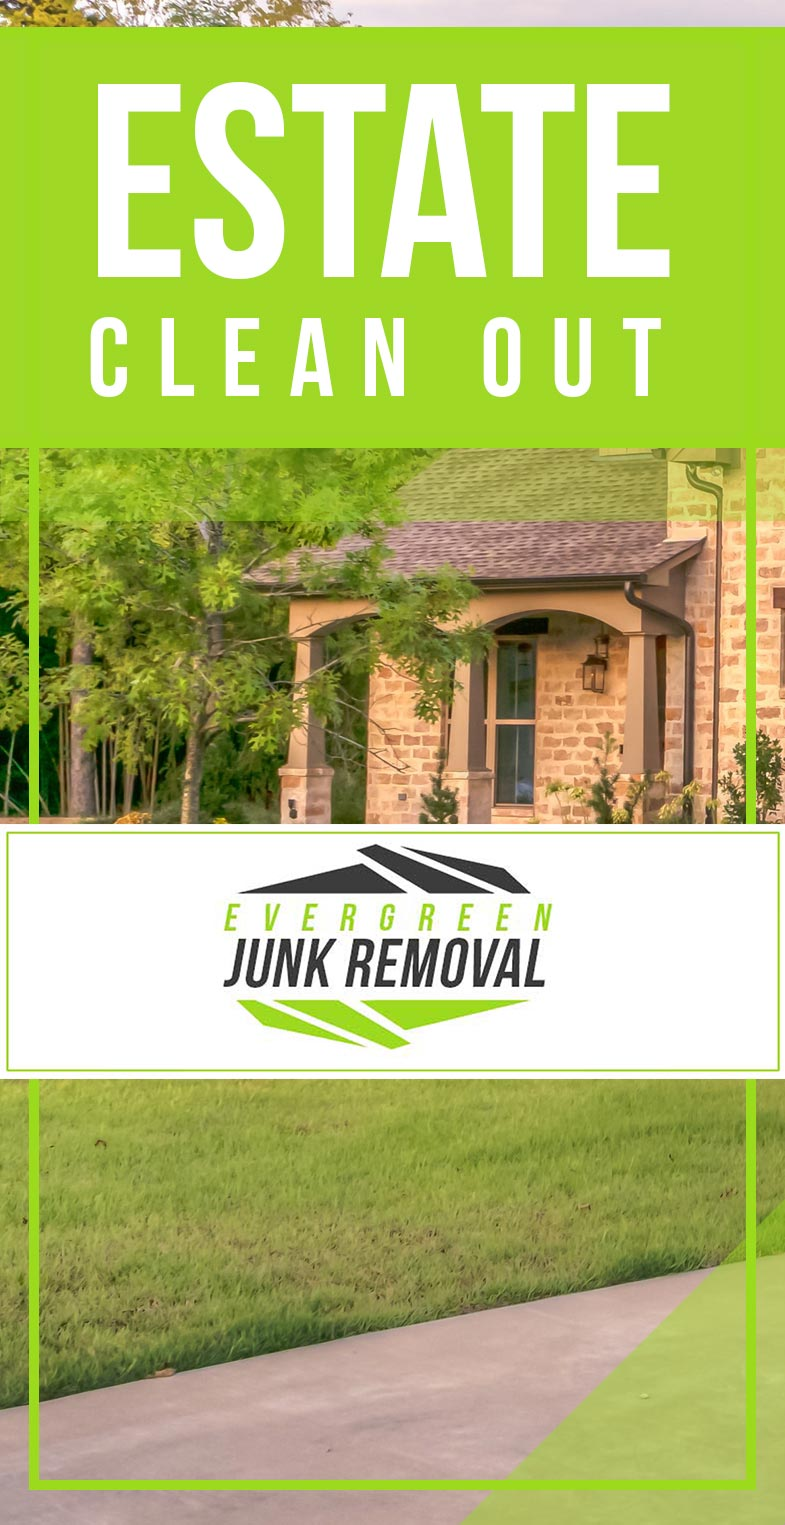 Johns Creek Property Clean Out